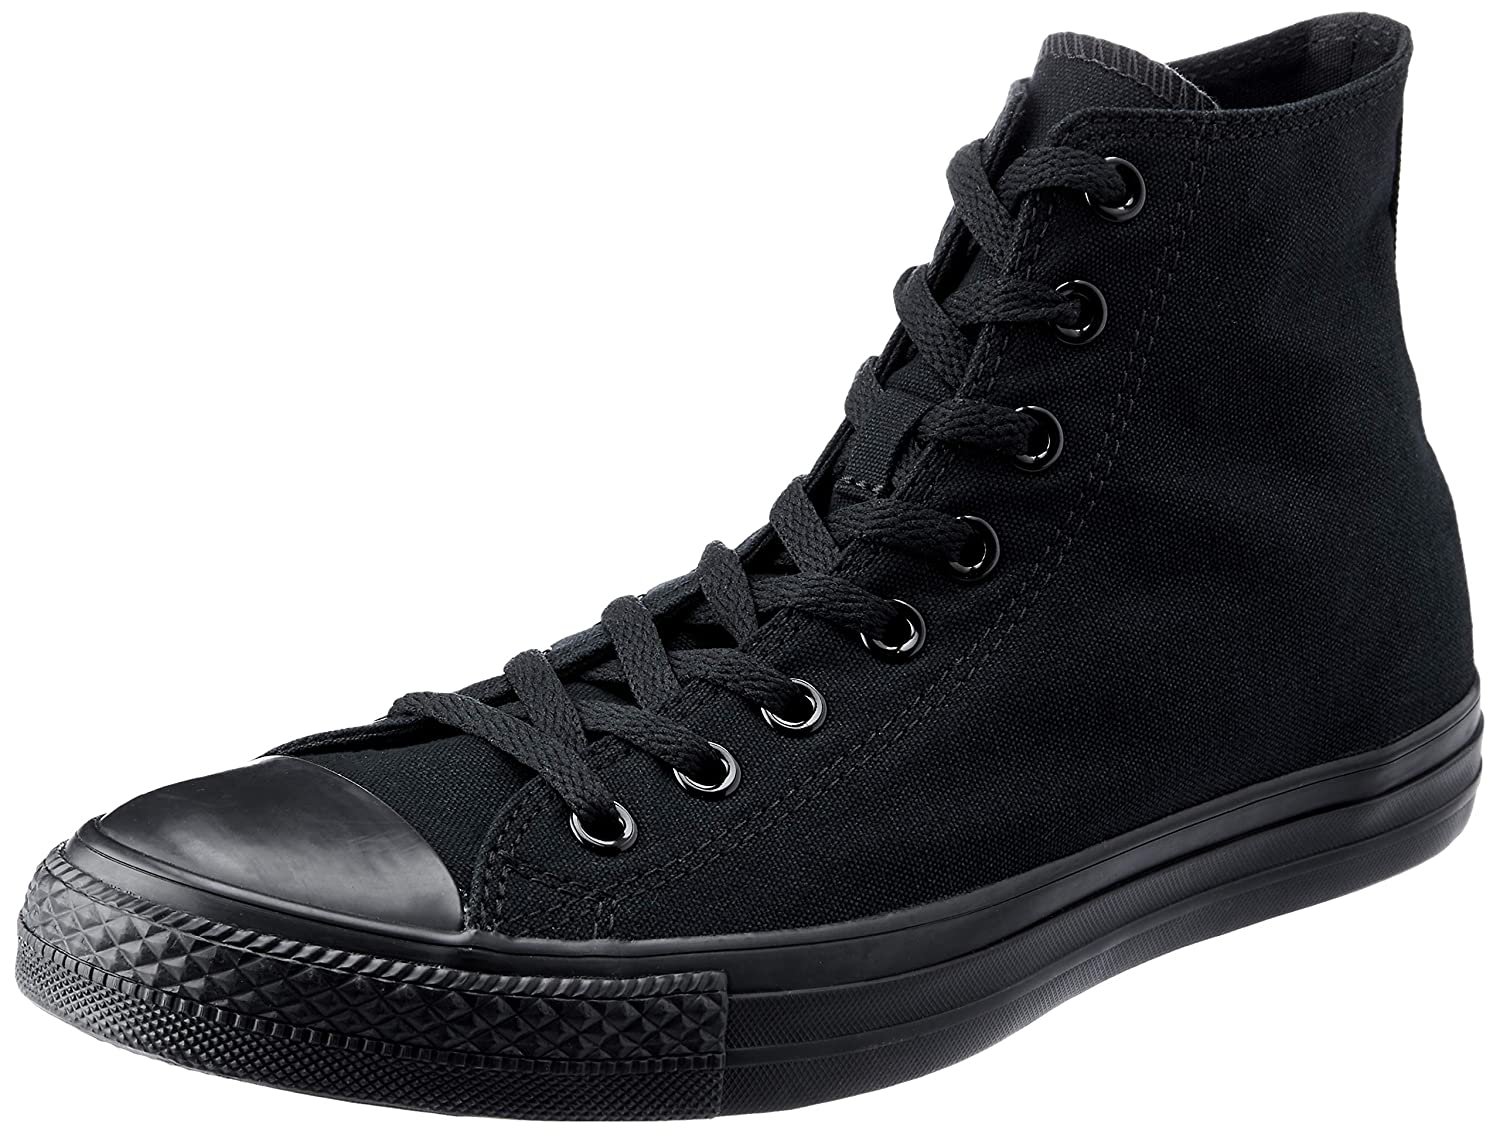 678eb4785b Amazon.com | Converse Chuck Taylor All Star Hi Top Black Monochrome, 7.5  B(M) US Women / 5.5 D(M) US Men | Fashion Sneakers